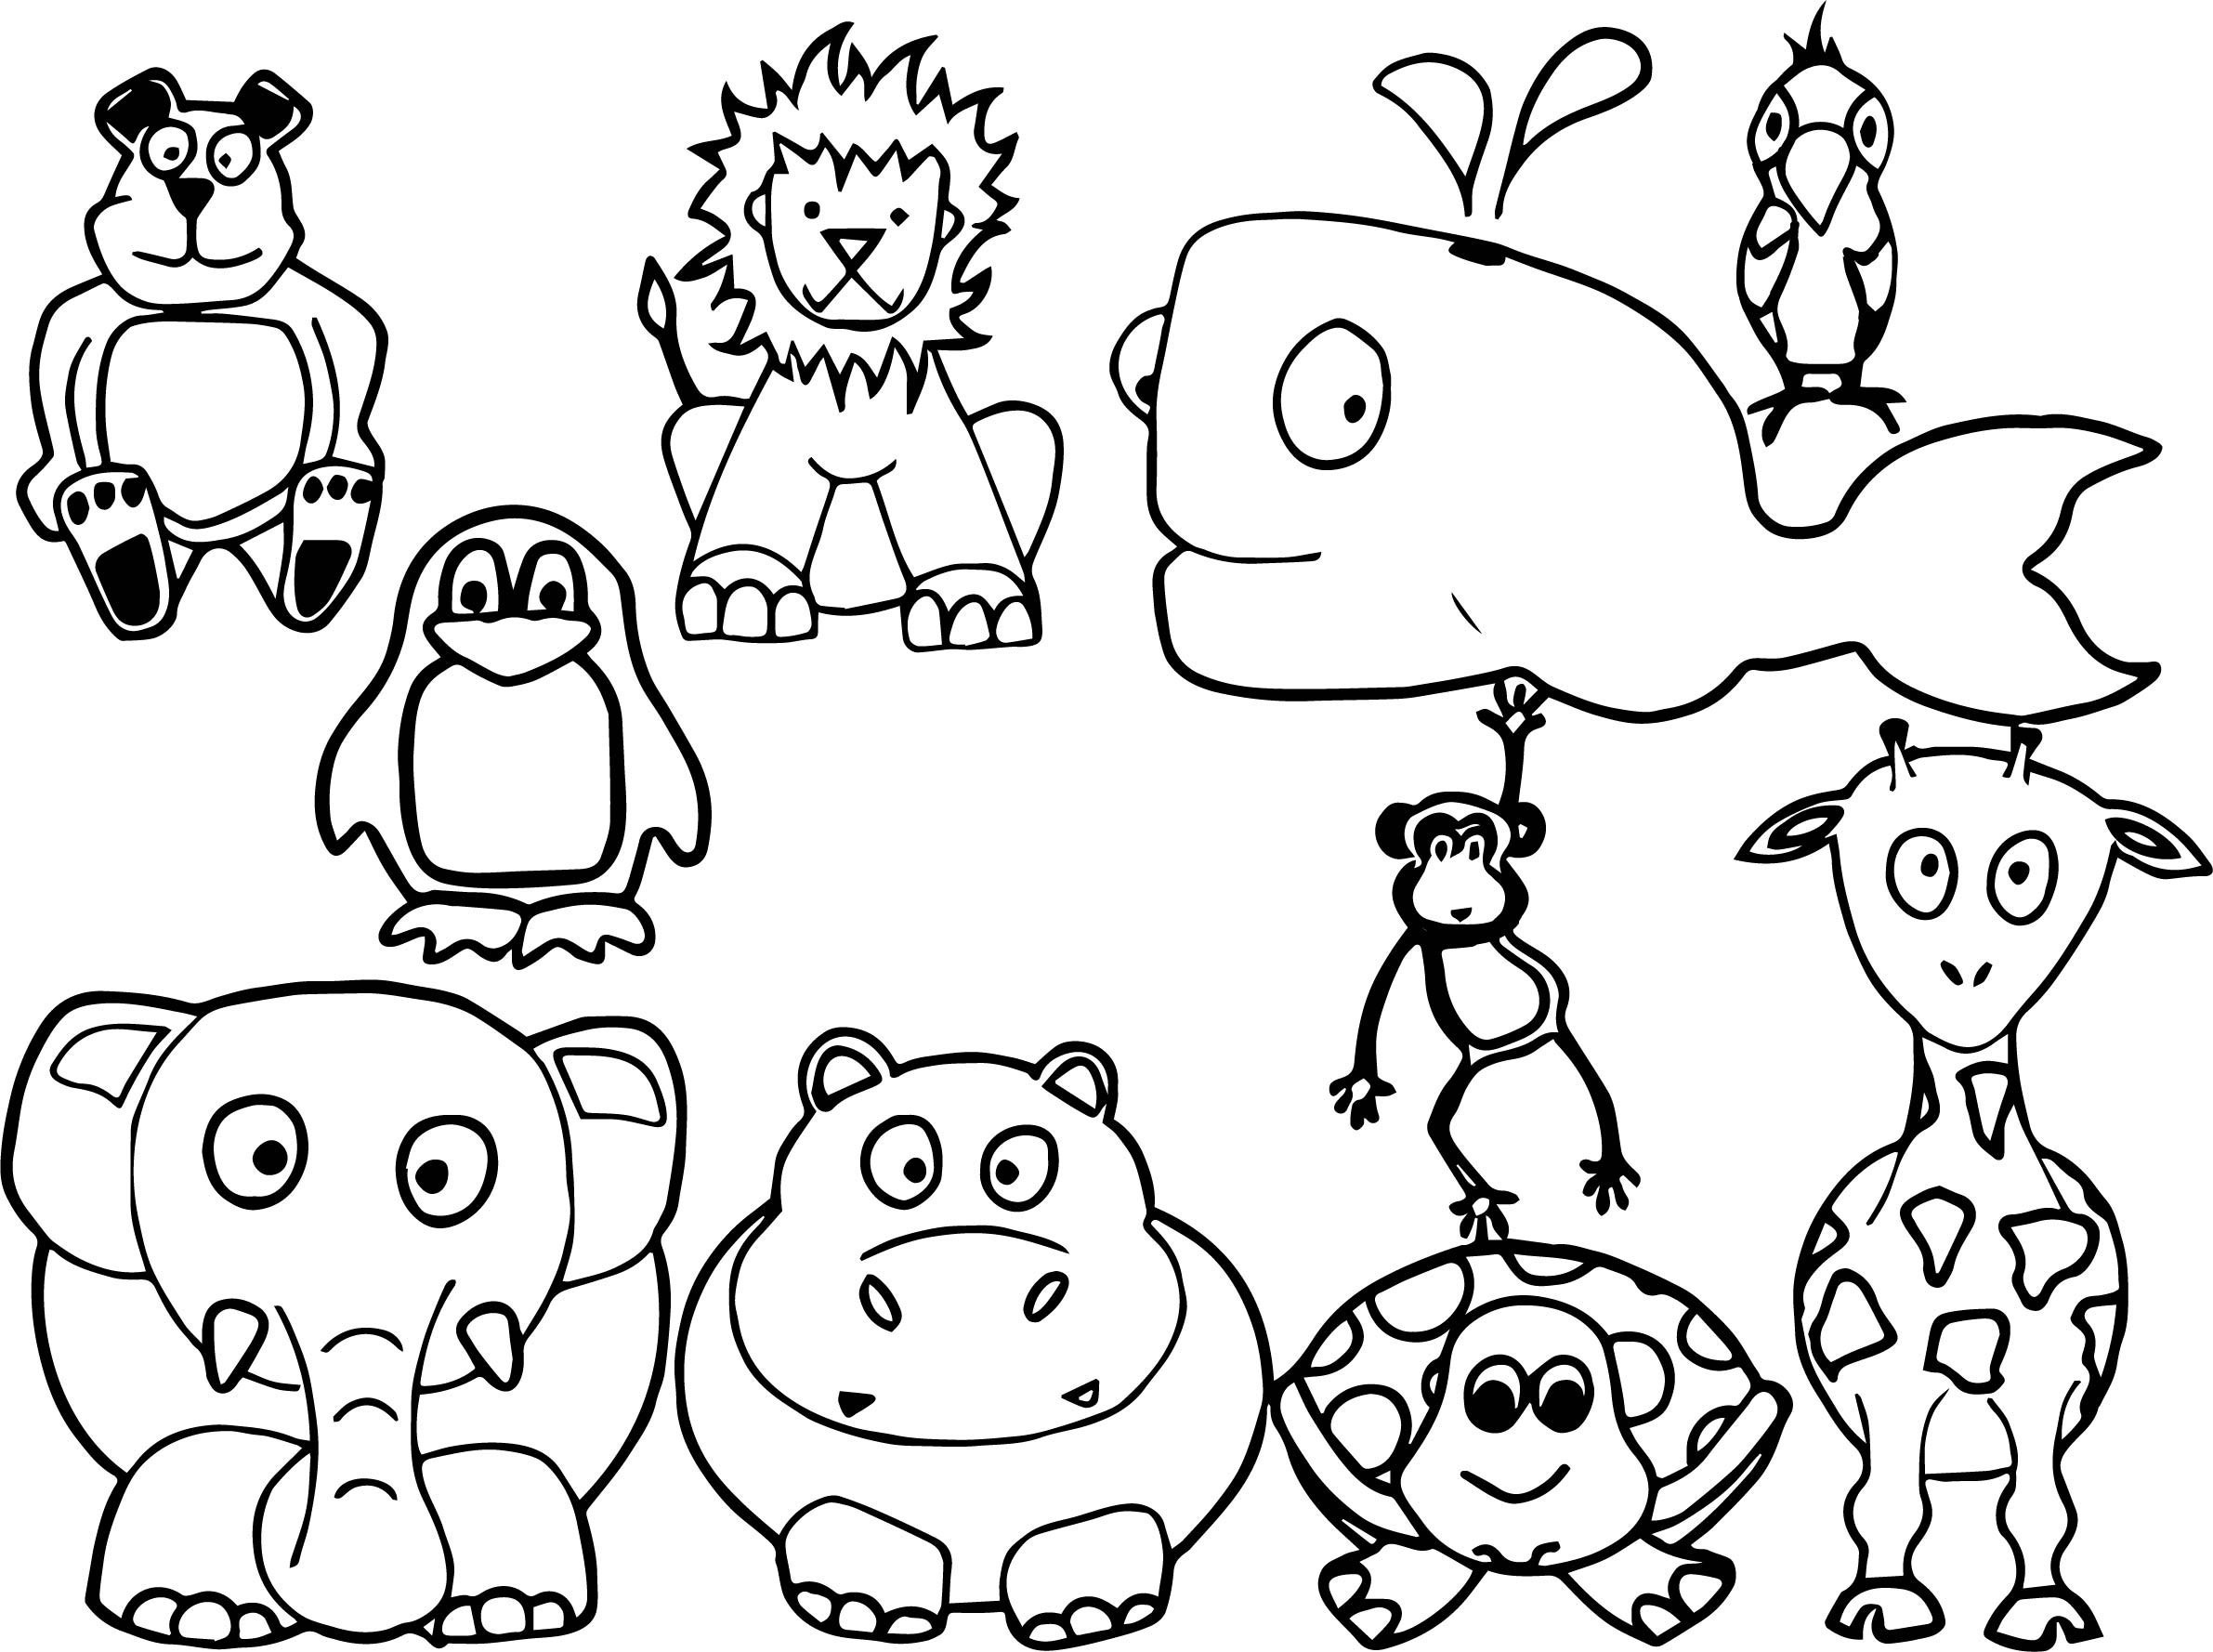 animal coloring pages for kids animals coloring pages realistic coloring pages for kids animal coloring pages